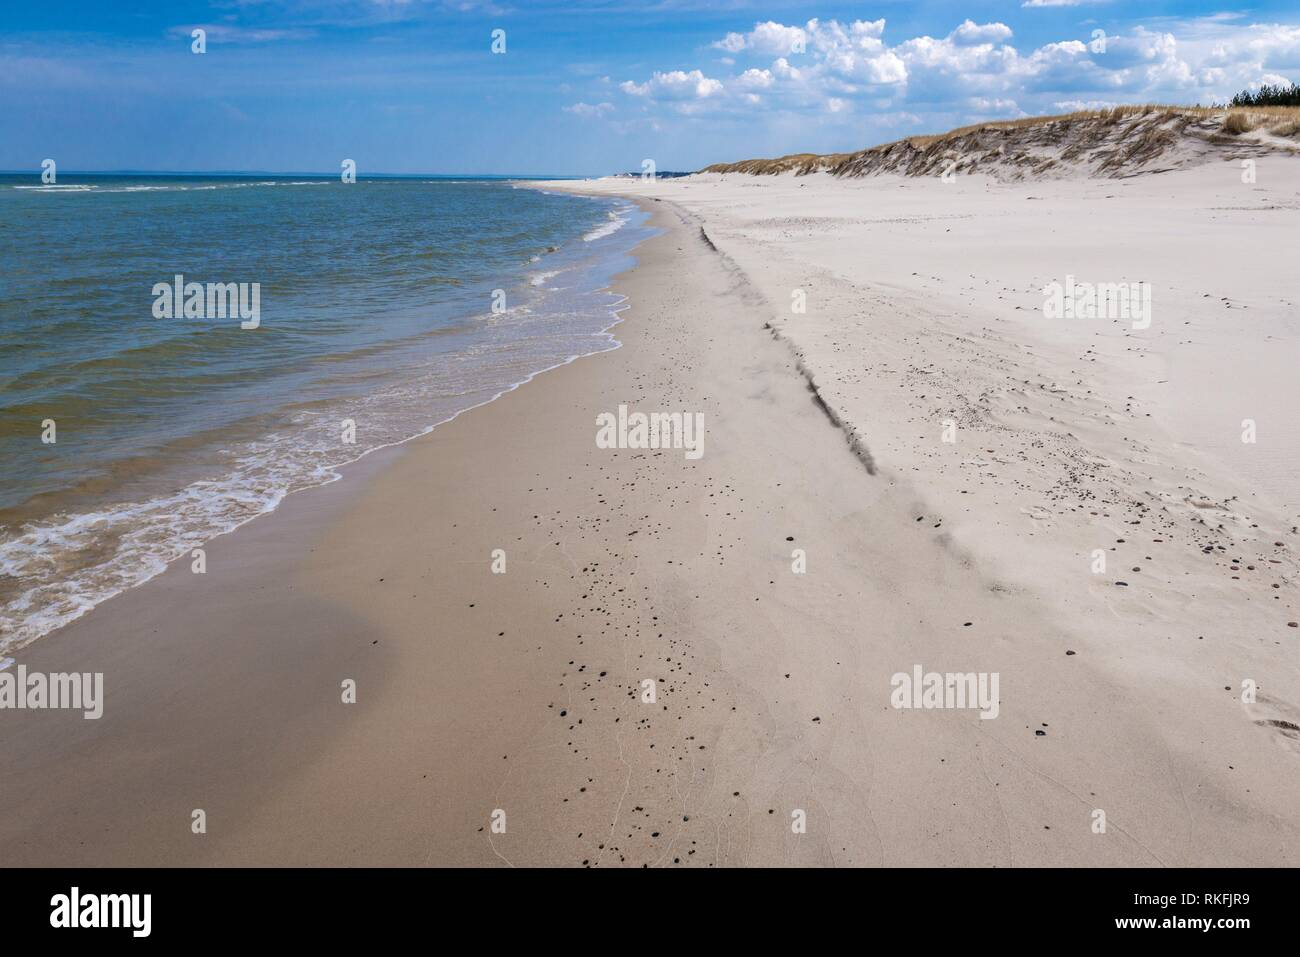 Wide beach in strict protection area of Slowinski National Park on the Baltic coast in Pomeranian Voivodeship, Poland. Stock Photo